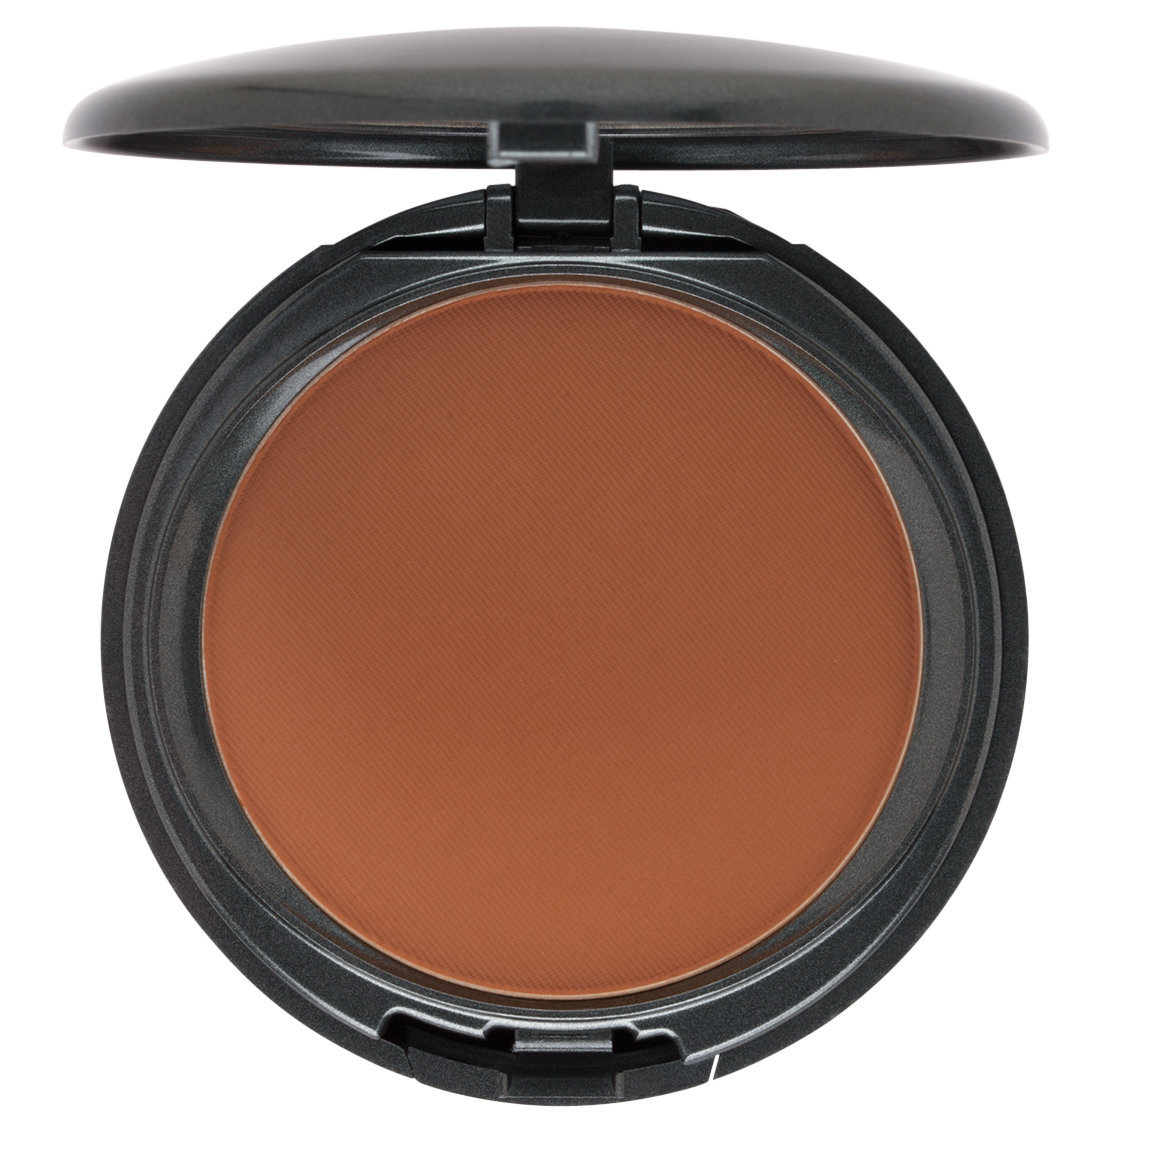 COVER | FX Pressed Mineral Foundation P110 alternative view 1 - product swatch.